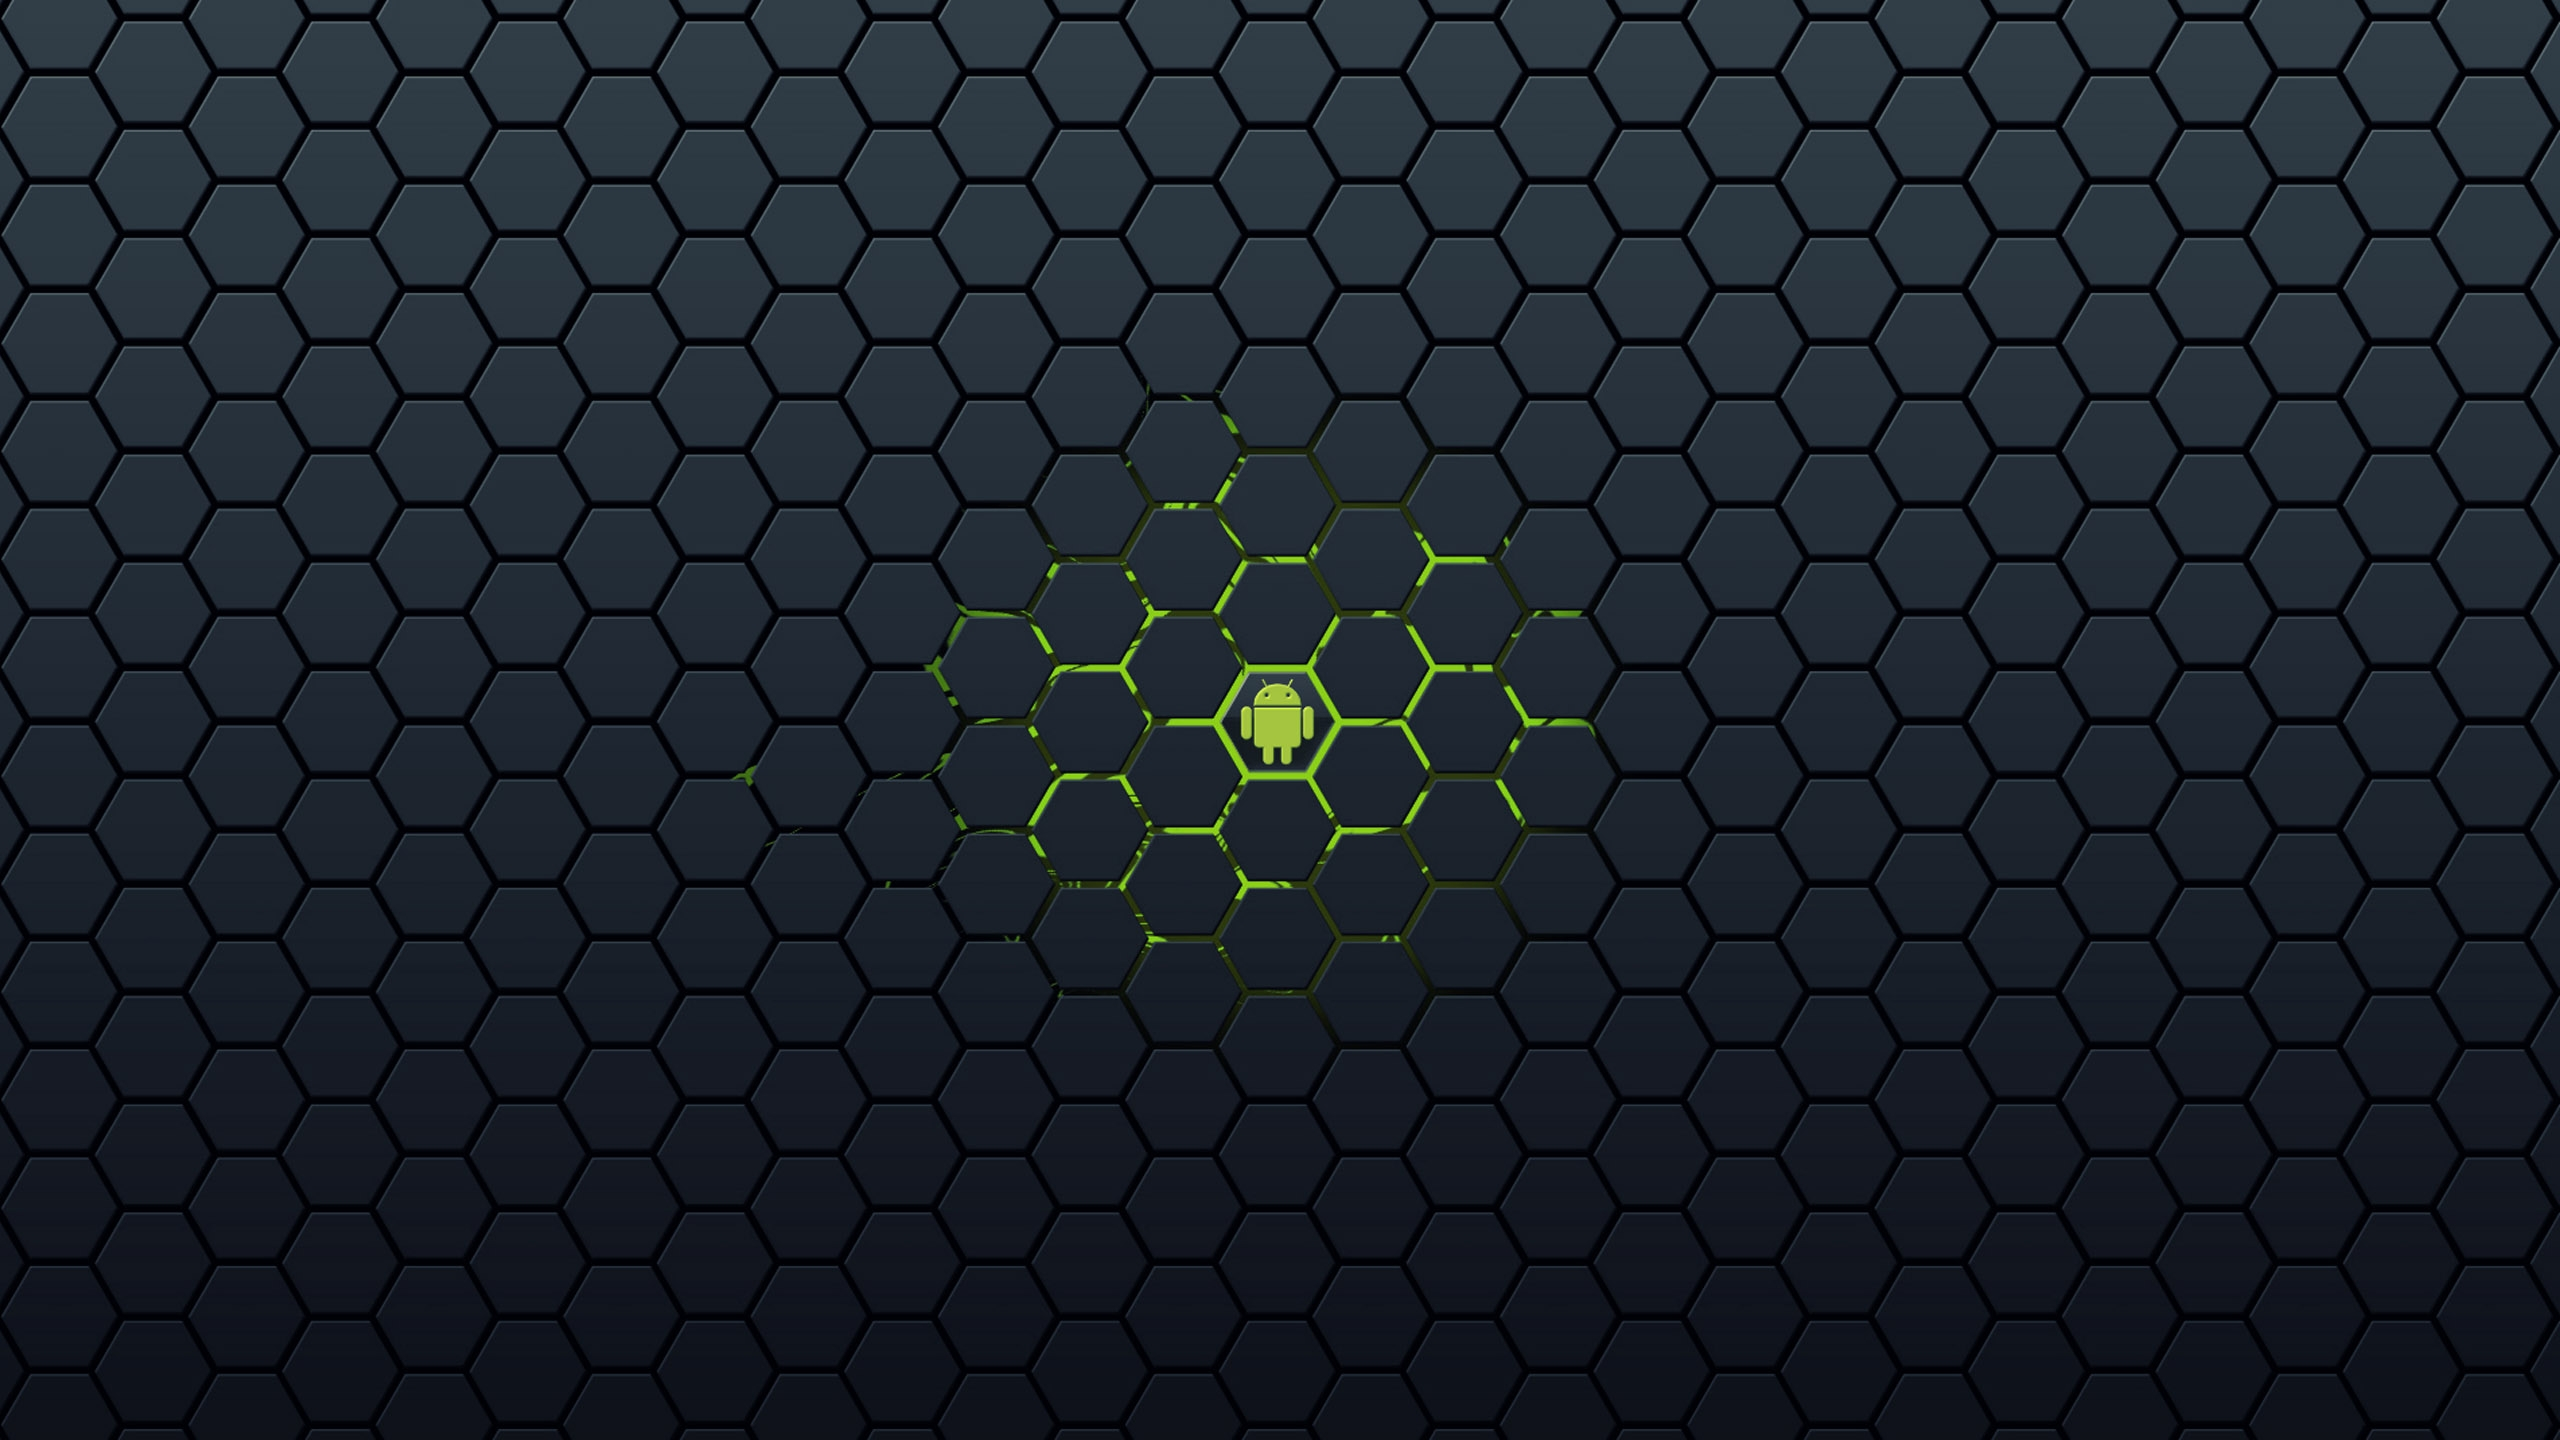 Best Android Backgrounds